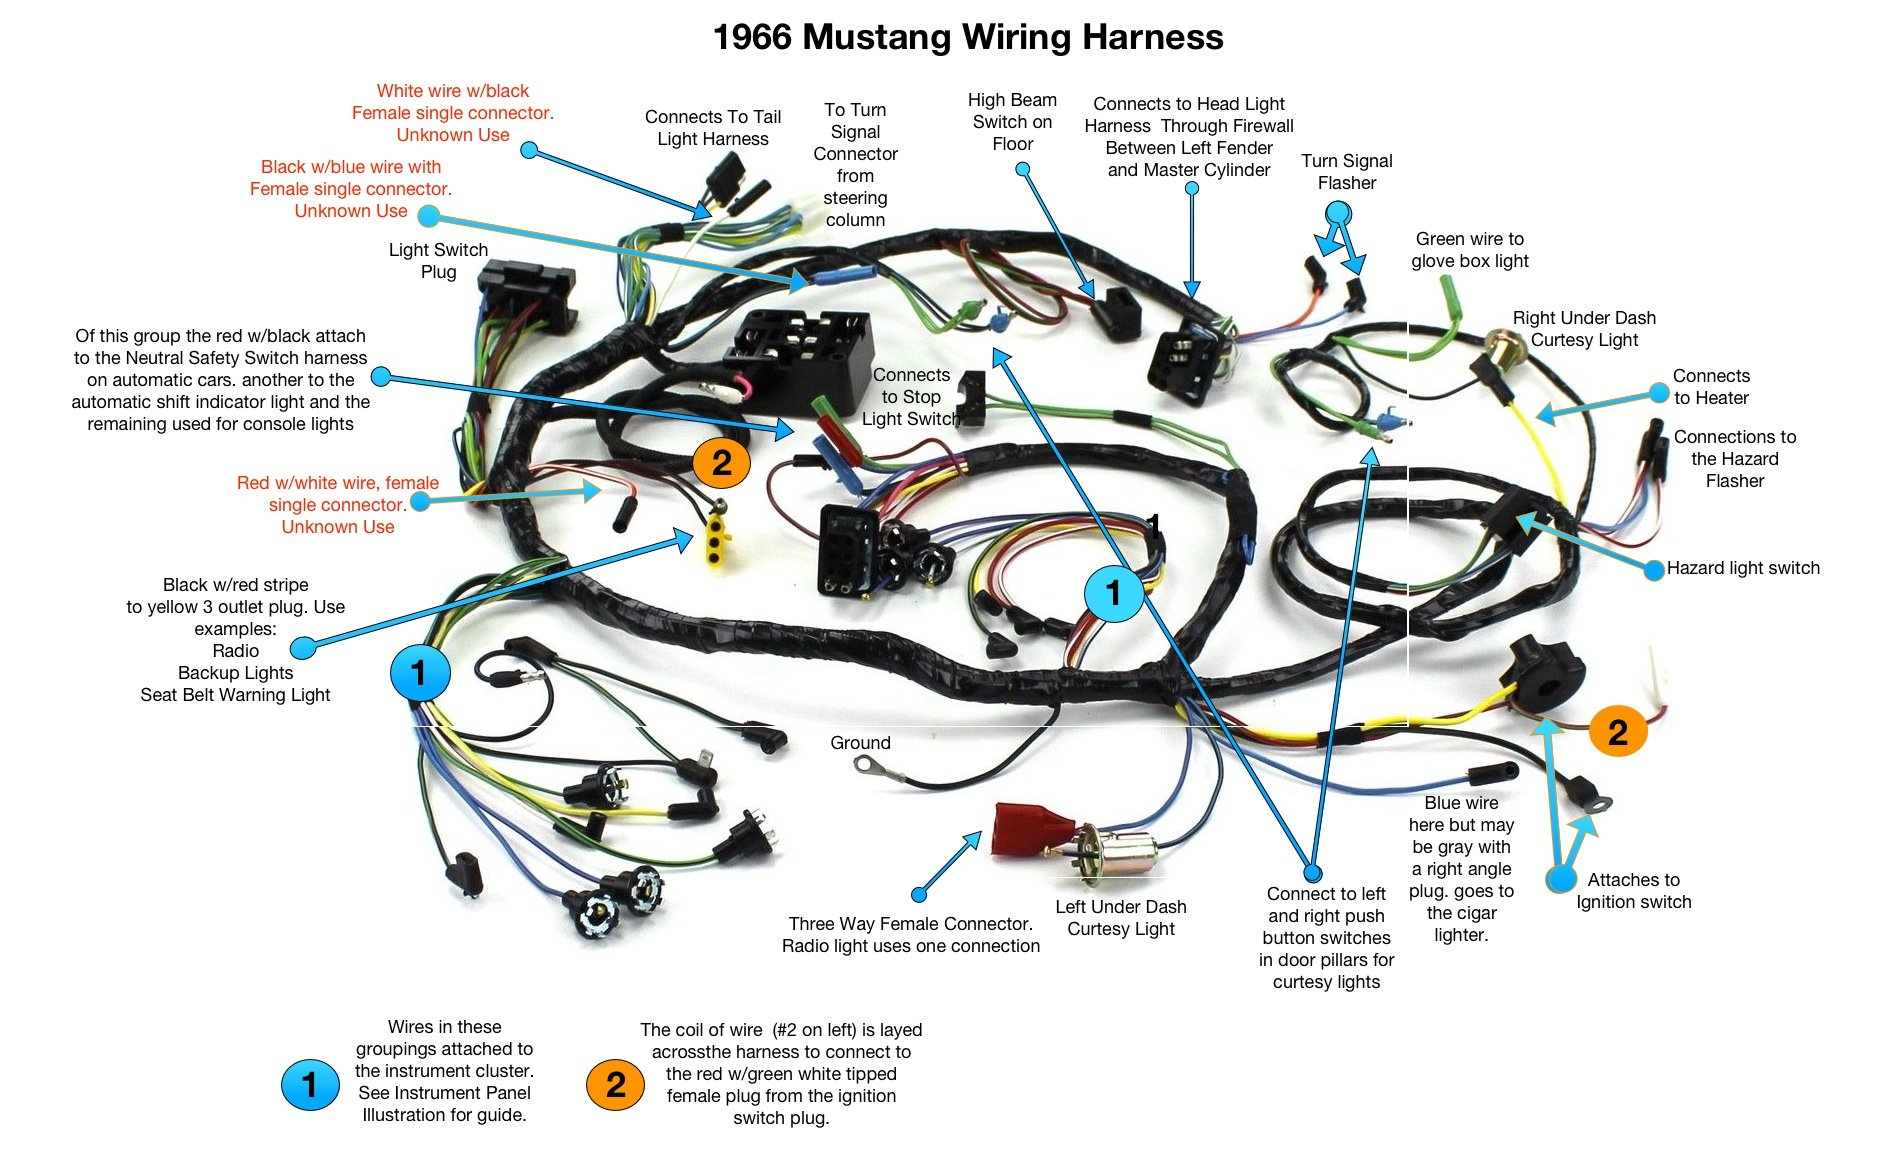 Harness Wiring Diagram The Portal And Forum Of Ford To Pioneer Mustang Schematics Rh Ksefanzone Com Wire